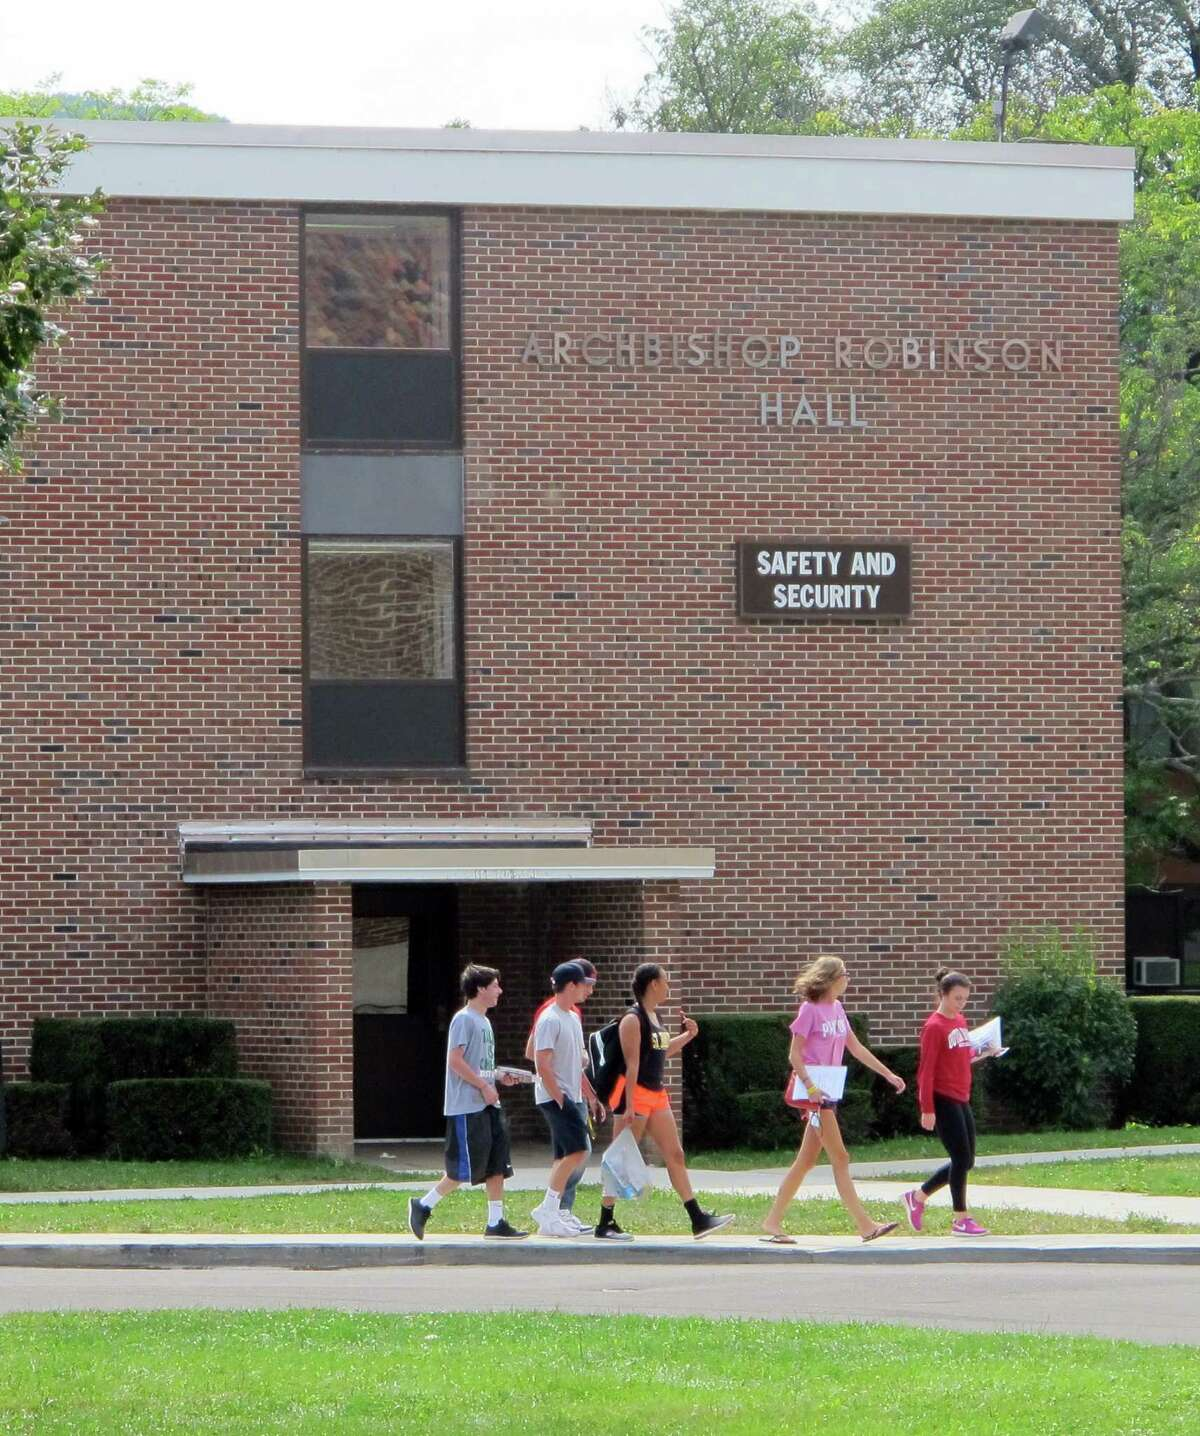 In this Aug. 29, 2015 photo, students walk past the public safety building at St. Bonaventure University in St. Bonaventure, N.Y. Students at New York state's private colleges and universities return to campus with a new, affirmative sexual consent policy to combat campus sexual violence. A bill signed by Gov. Andrew Cuomo over the summer expands on a policy in effect at public colleges which includes a